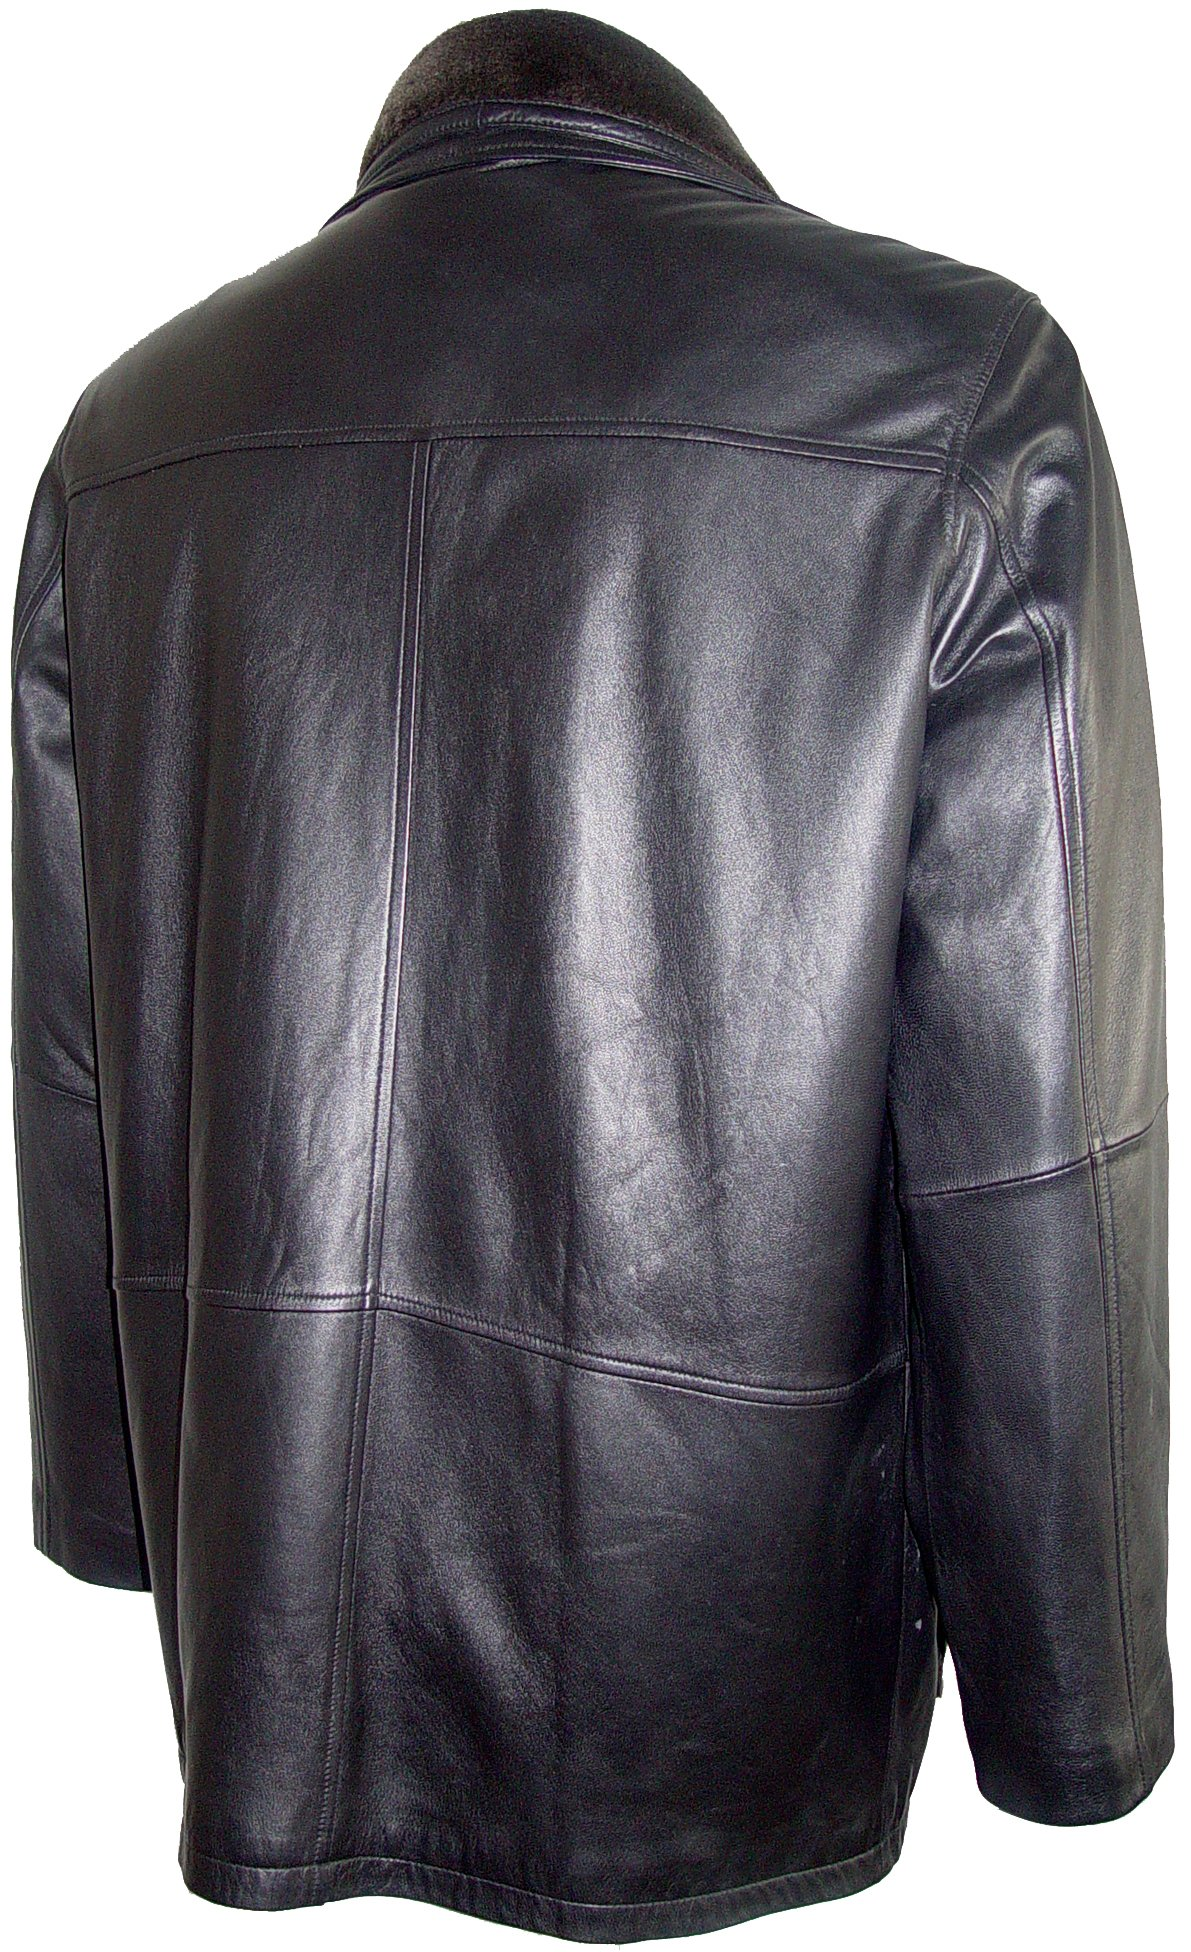 Johnnyblue Men 2002 Simply Tall Big All Size Lamb Leather Barn Coat by Johnnyblue (Image #6)